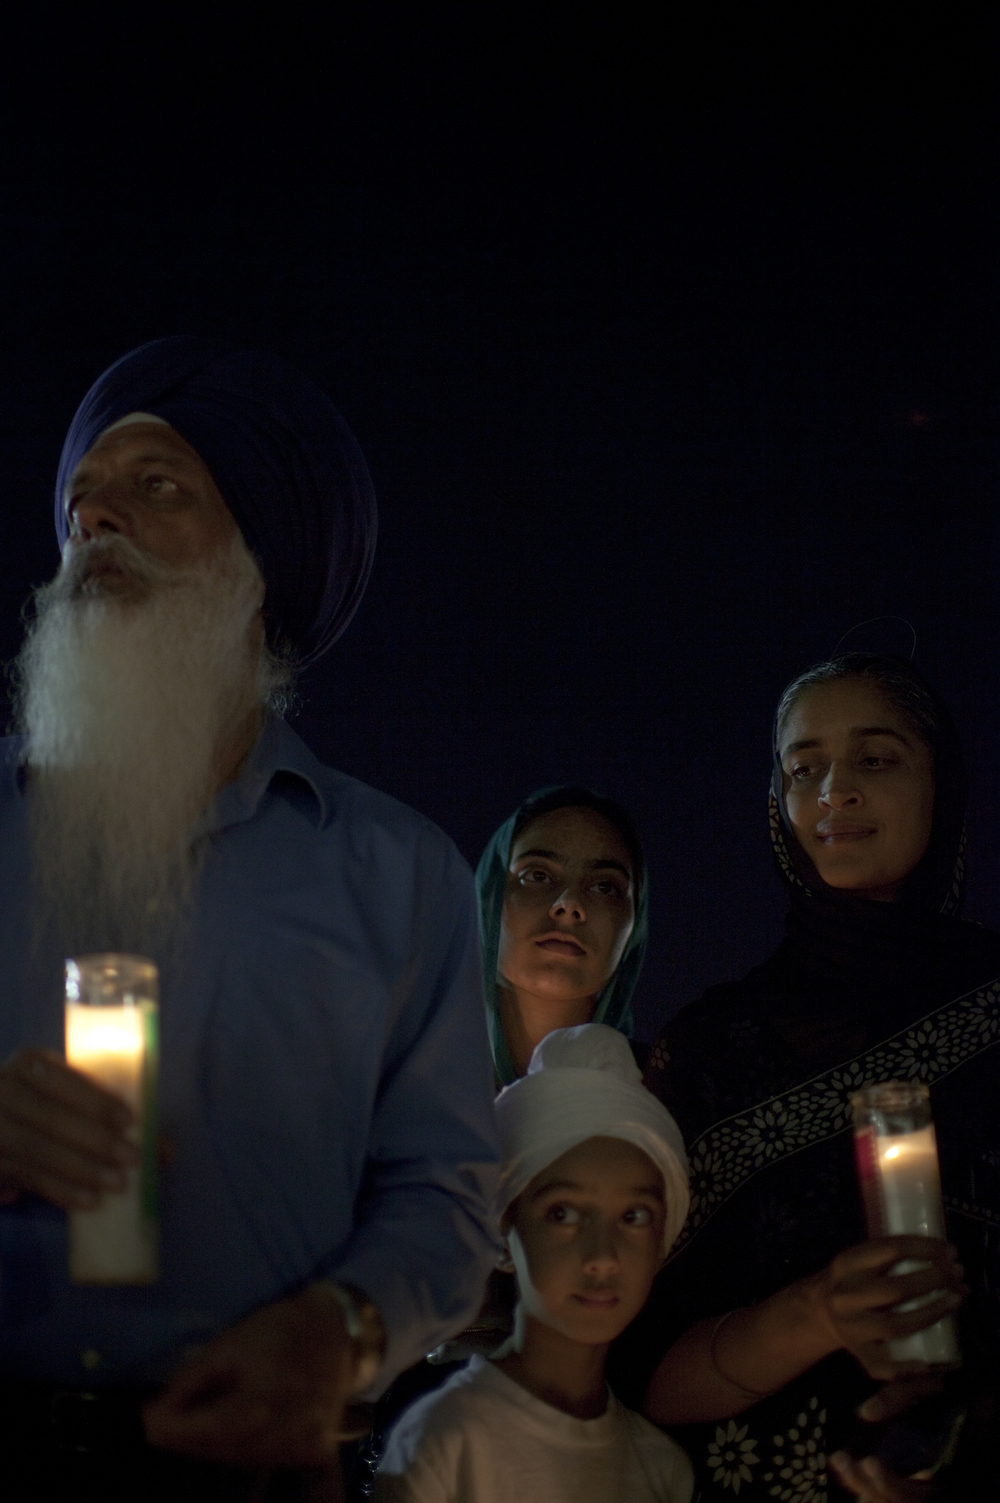 A family of the Sikh faith gathered at a candlelight vigil for six worshipers who were shot and killed at a Temple in Wisconsin by a white supremacist.